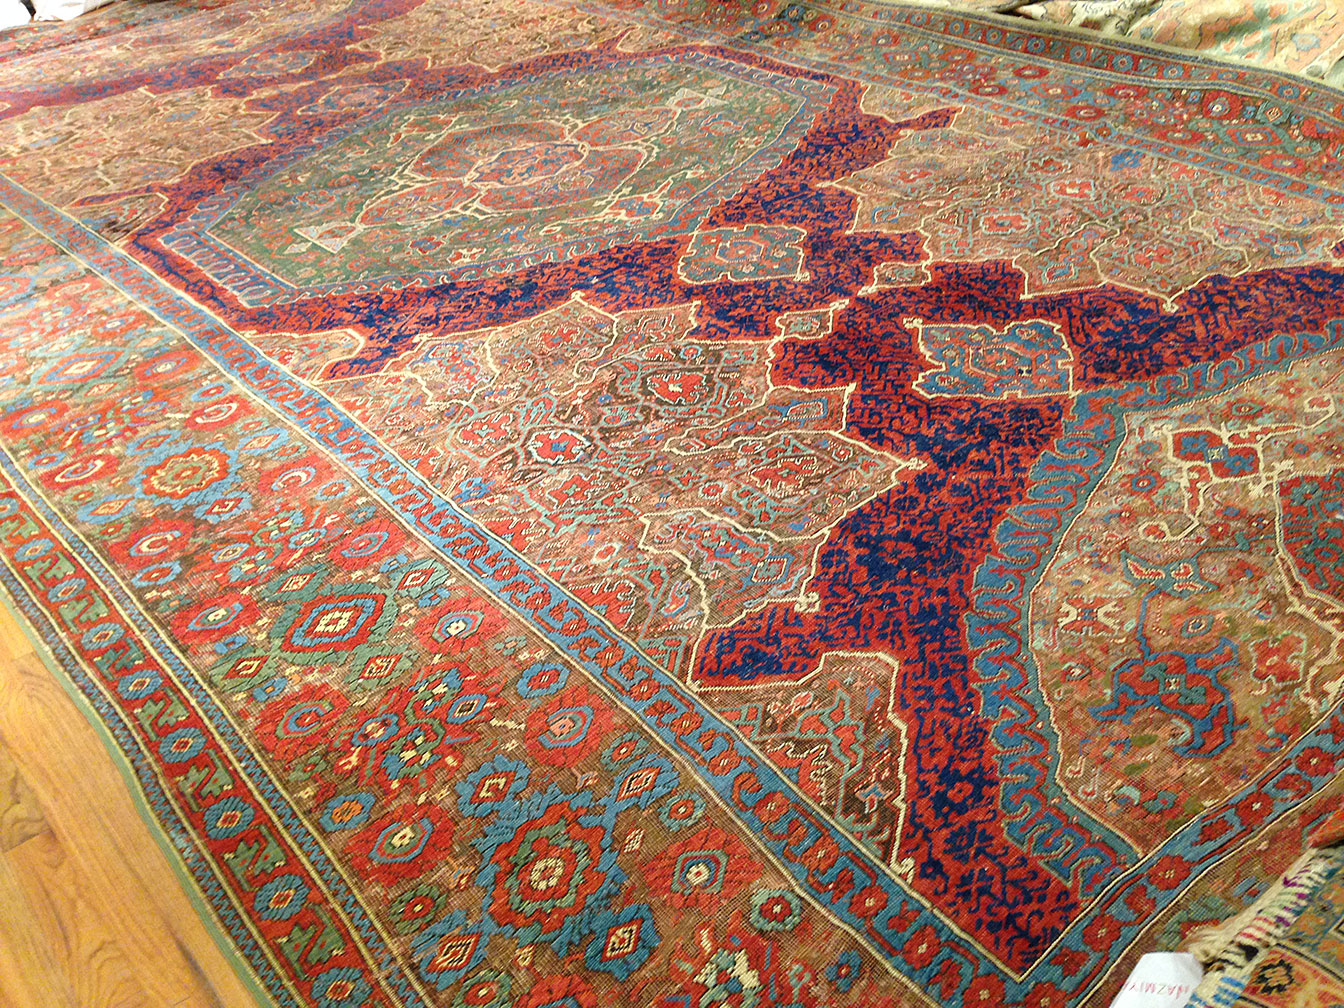 Antique oushak Carpet - # 9625